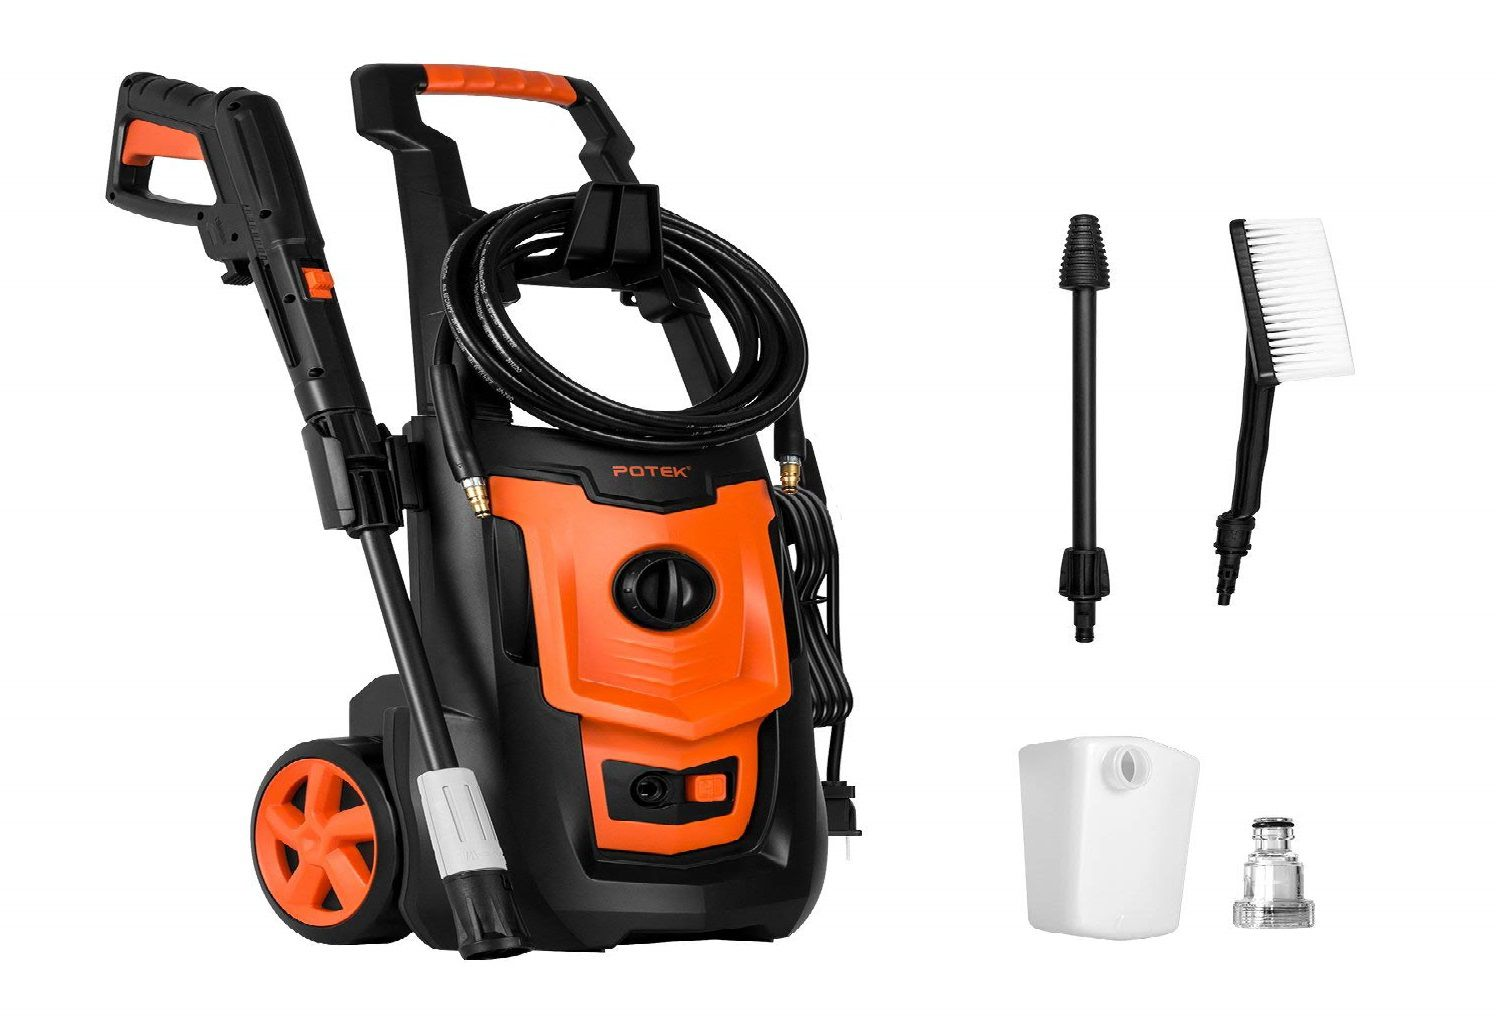 POTEK 1800PSI Electric Pressure Washer Review